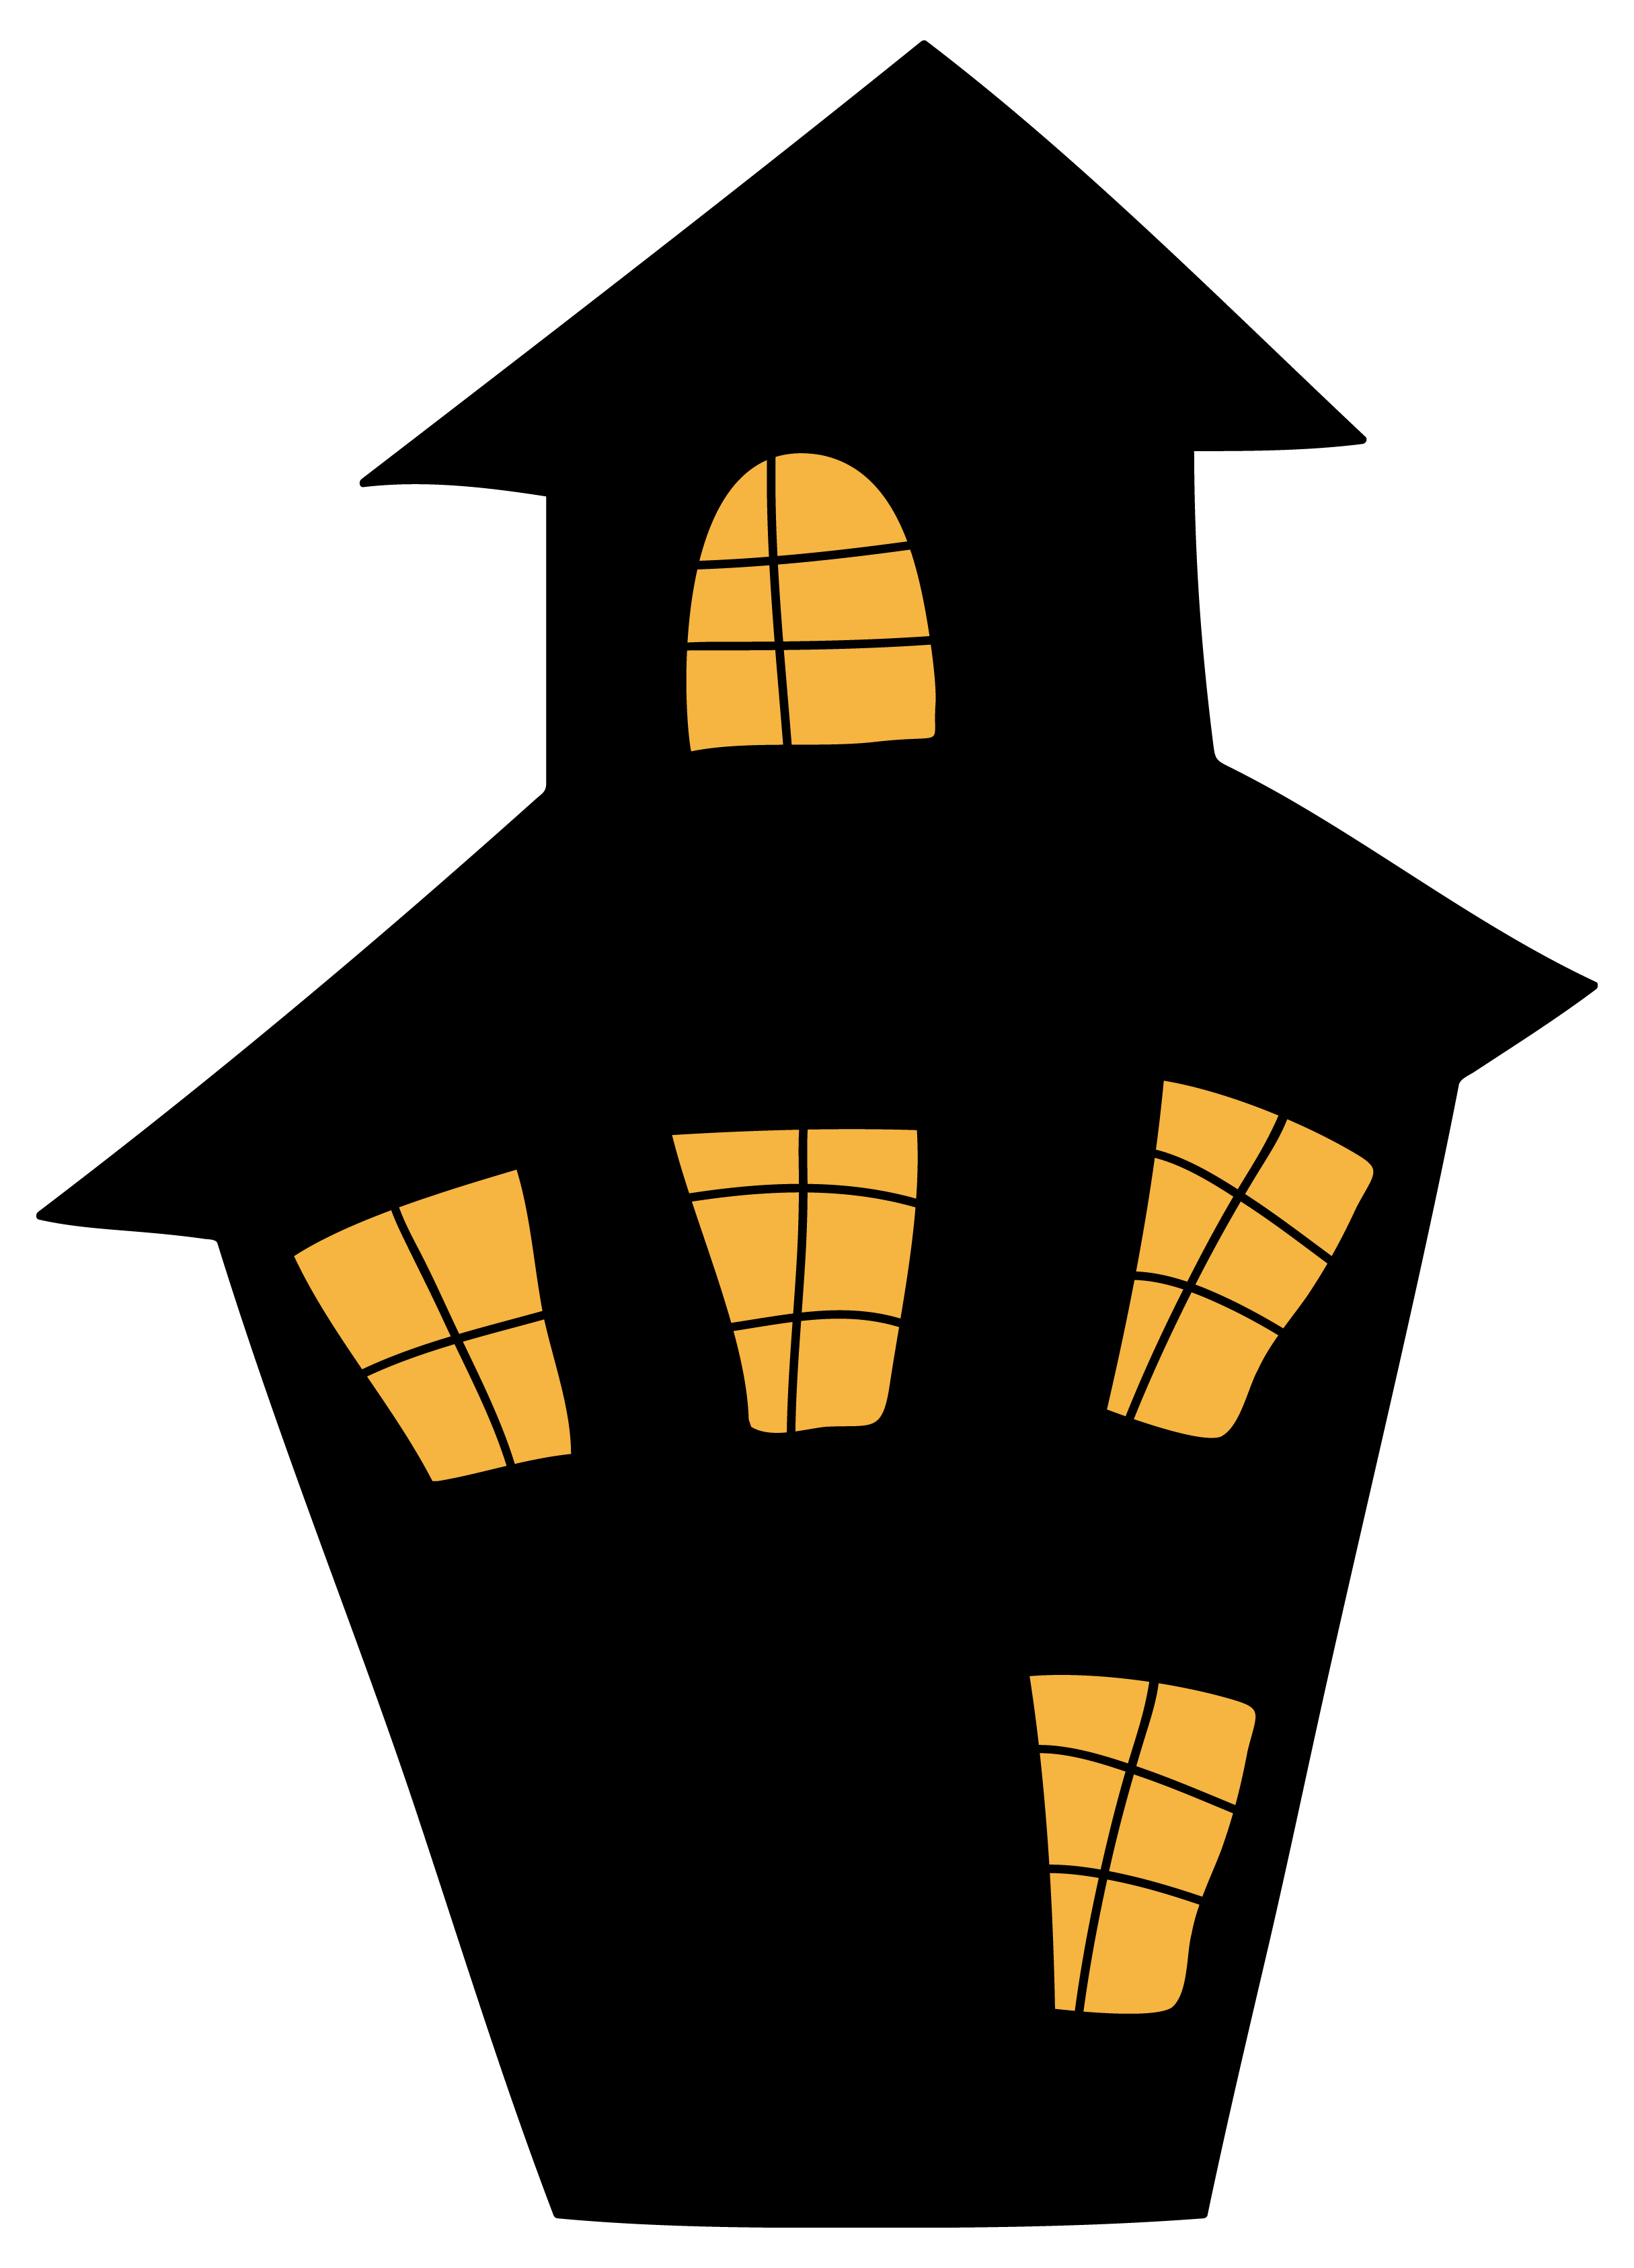 Halloween green clipart haunted house banner transparent House Clipart Png. House Clipart Png - Deltasport.co banner transparent